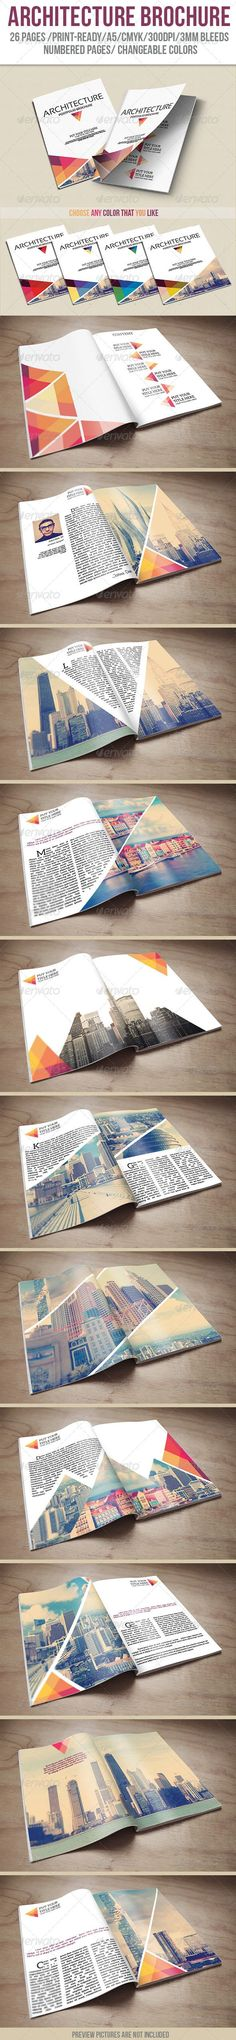 Architecture Portfolio Brochure  #cmyk #colors #Easy Customize • Click here to download ! http://graphicriver.net/item/architecture-portfolio-brochure/6056165?s_rank=177&ref=pxcr #architectureportfolio